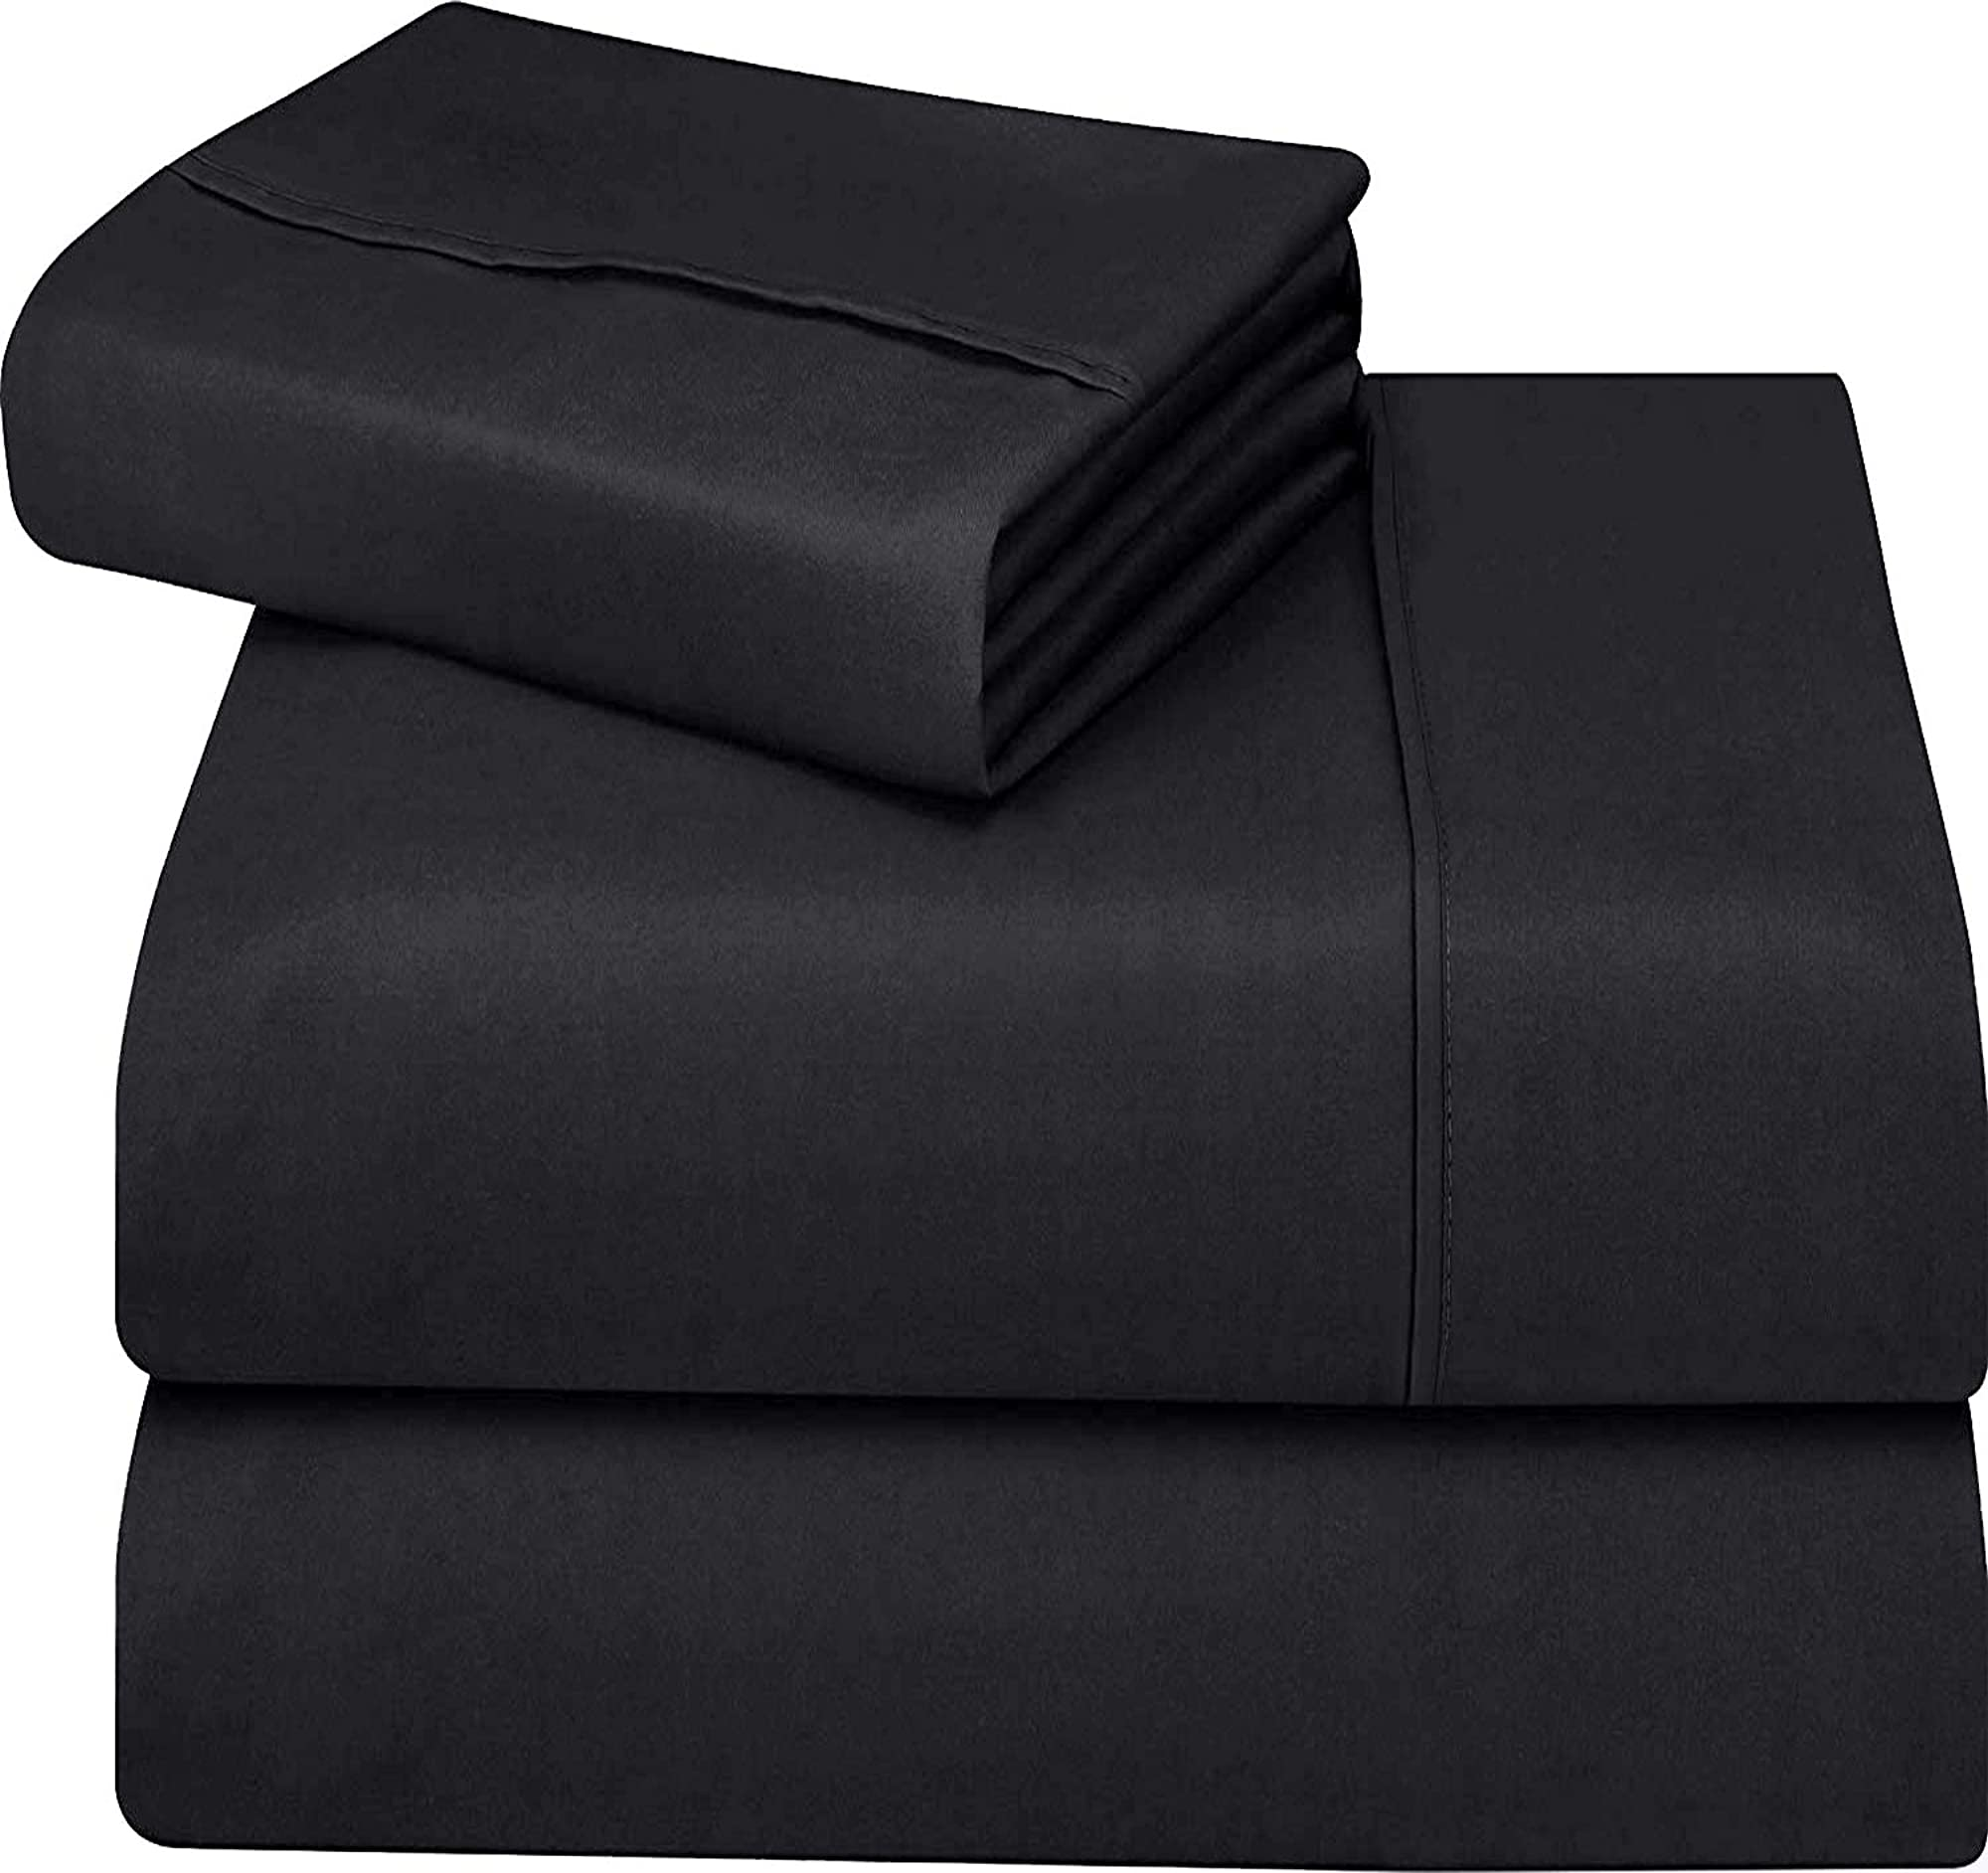 Soft Brushed Microfiber Fabric 4 Piece Bed Sheet Set